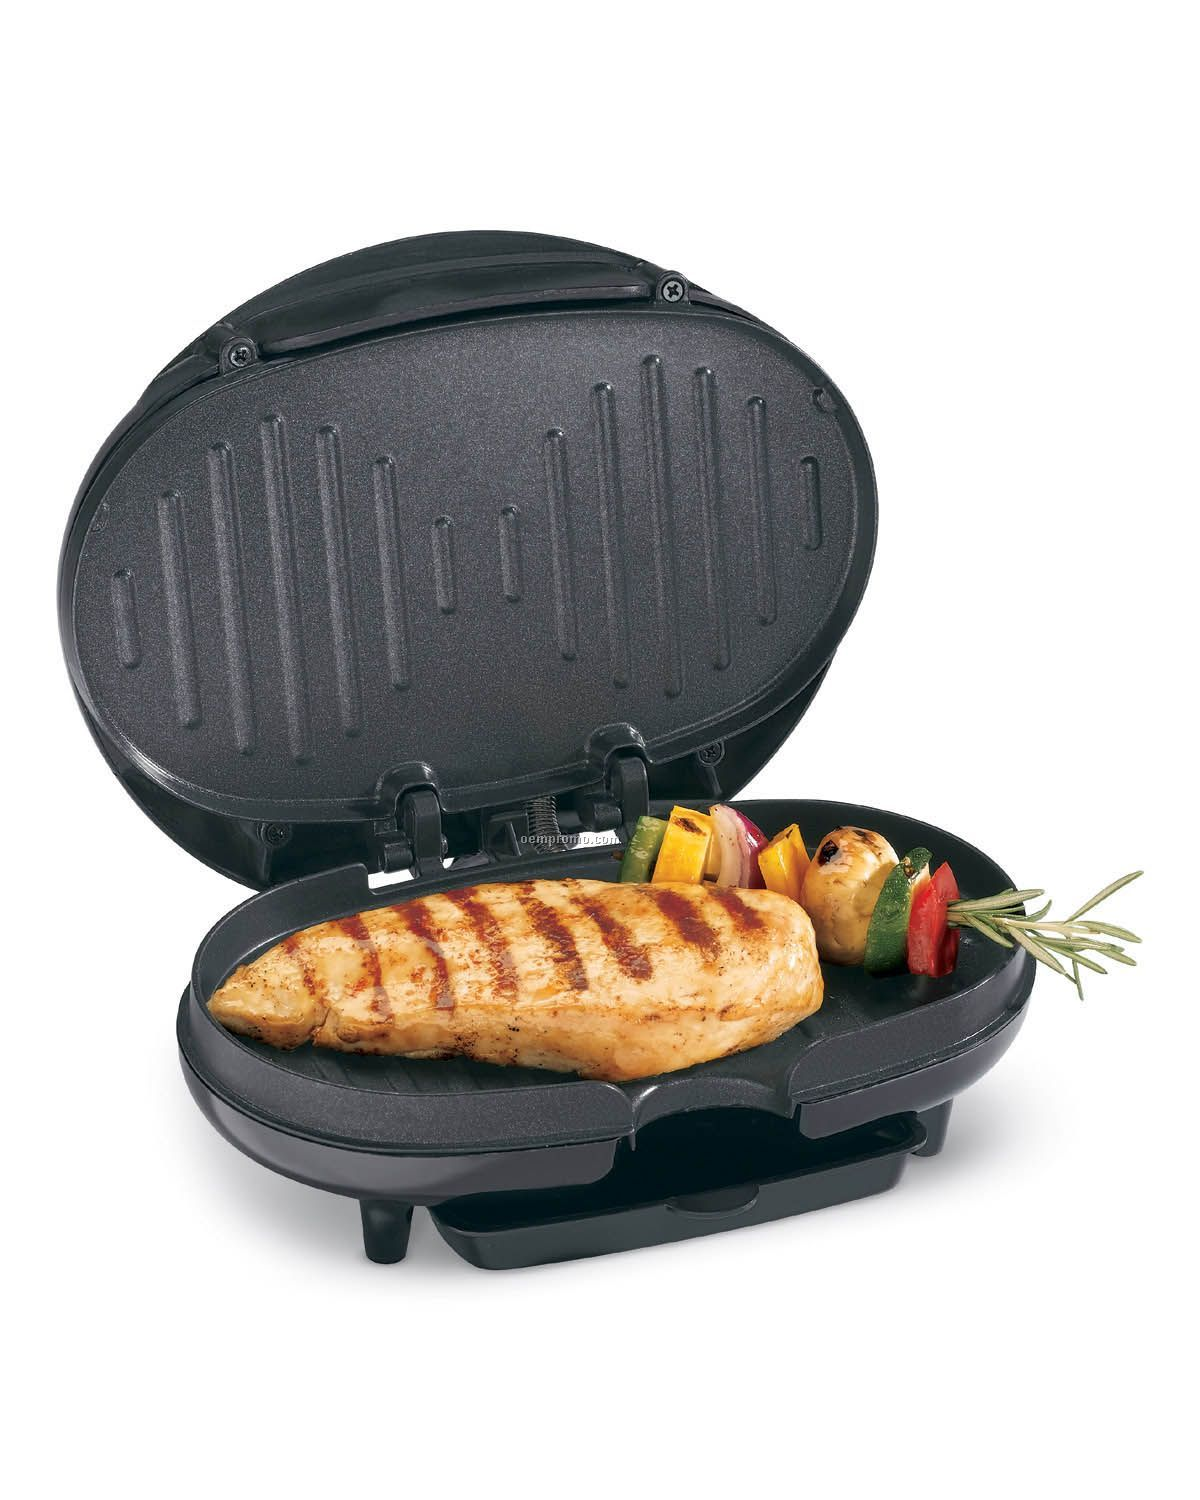 Proctor Silex 32 Sq. In. Contact Indoor Grill